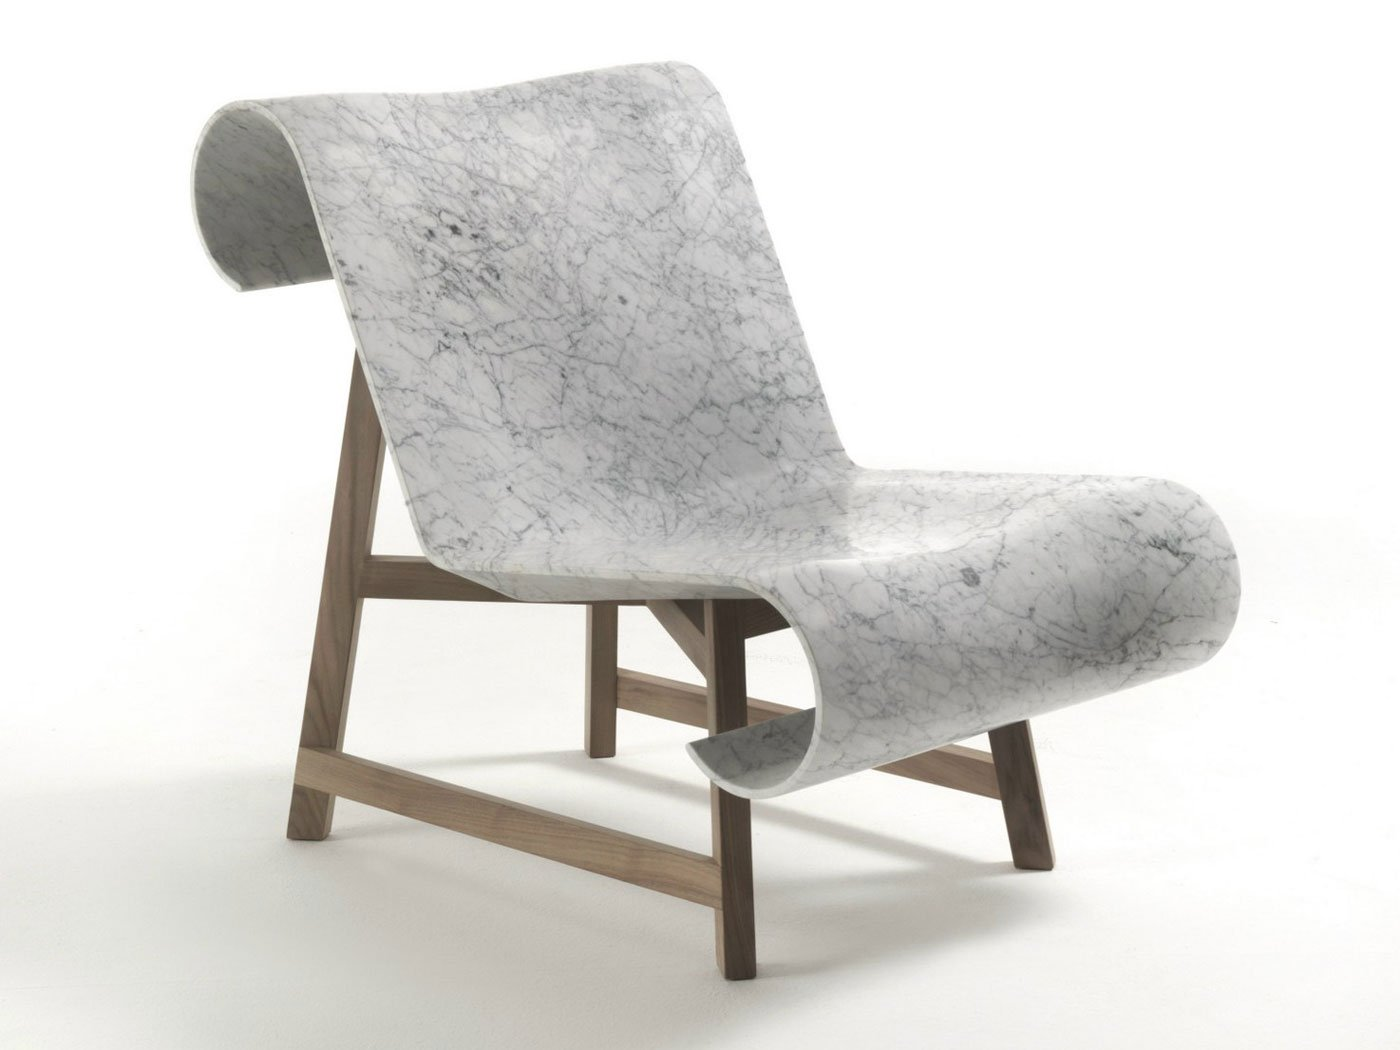 Posts  sc 1 st  Gessato & Modern Classic Chair Made of Marble and Wood